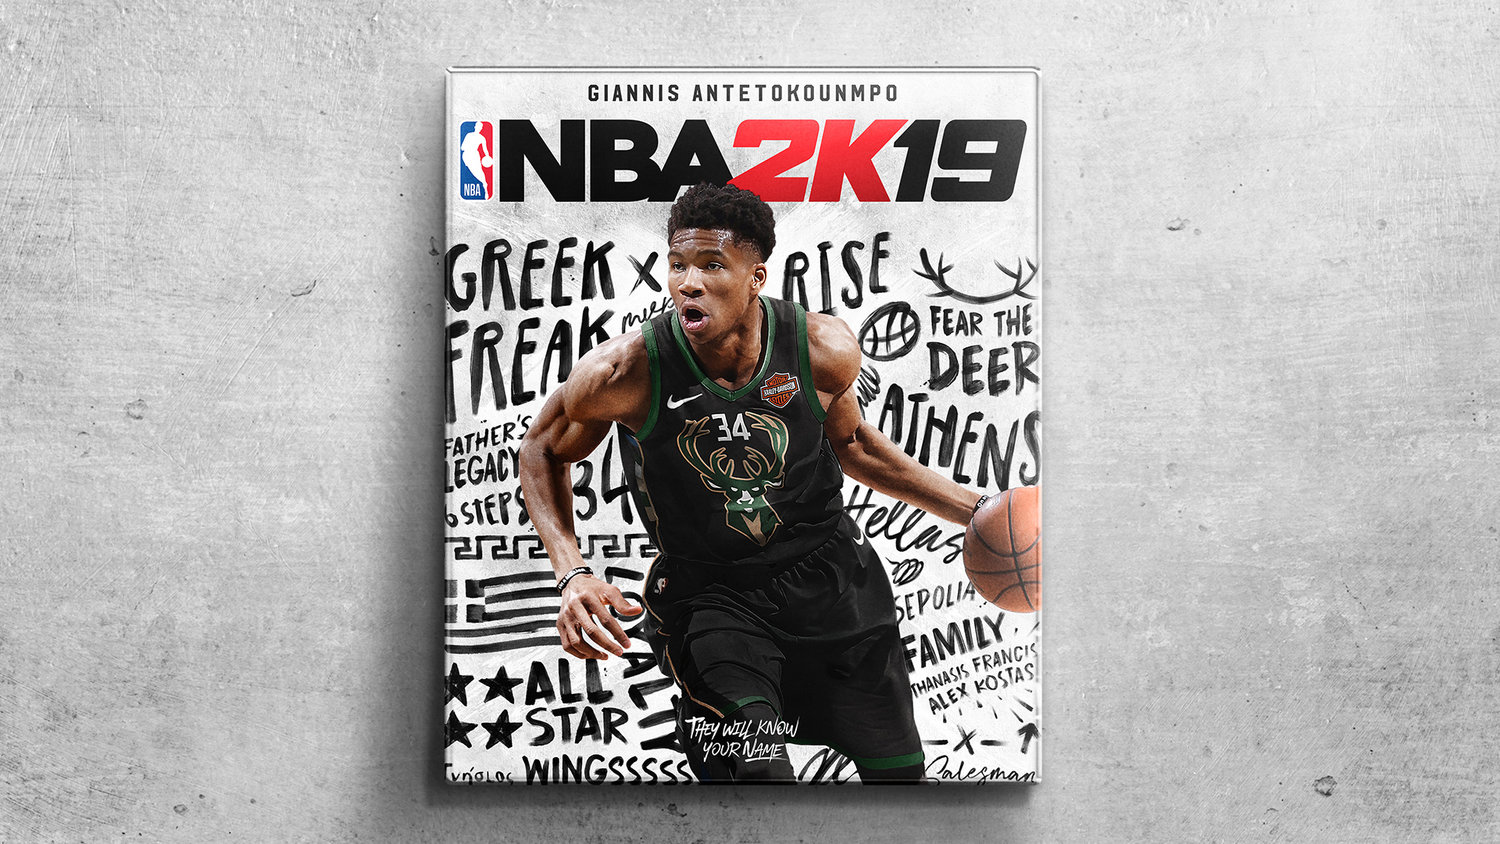 Giannis_coverart.jpg